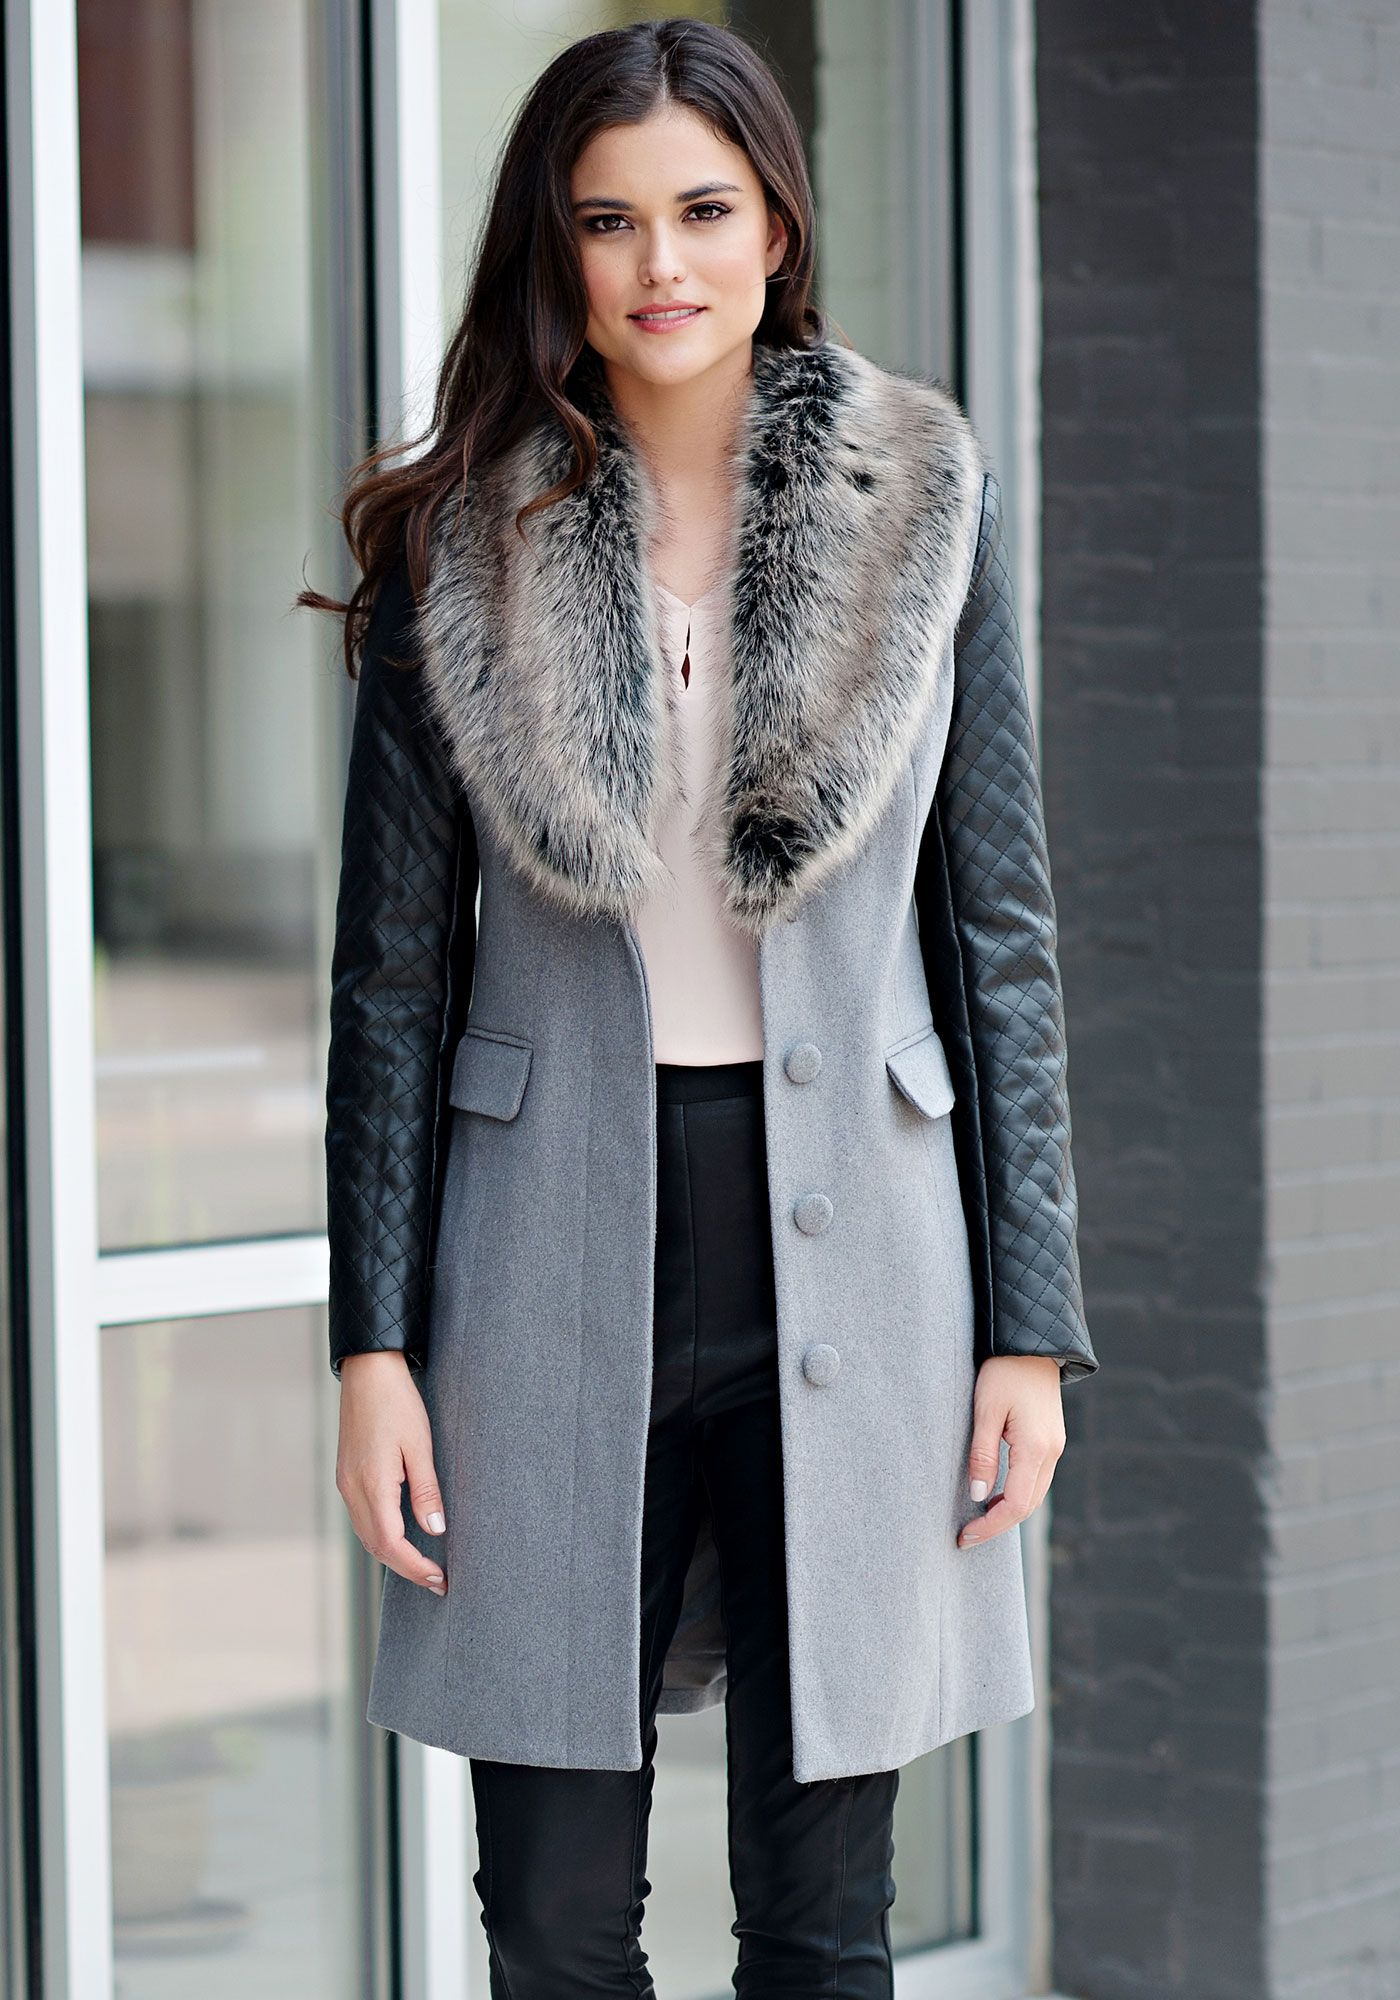 a698242b133b Grey Faux Wool Knee-Length Coat with Faux Fur Collar